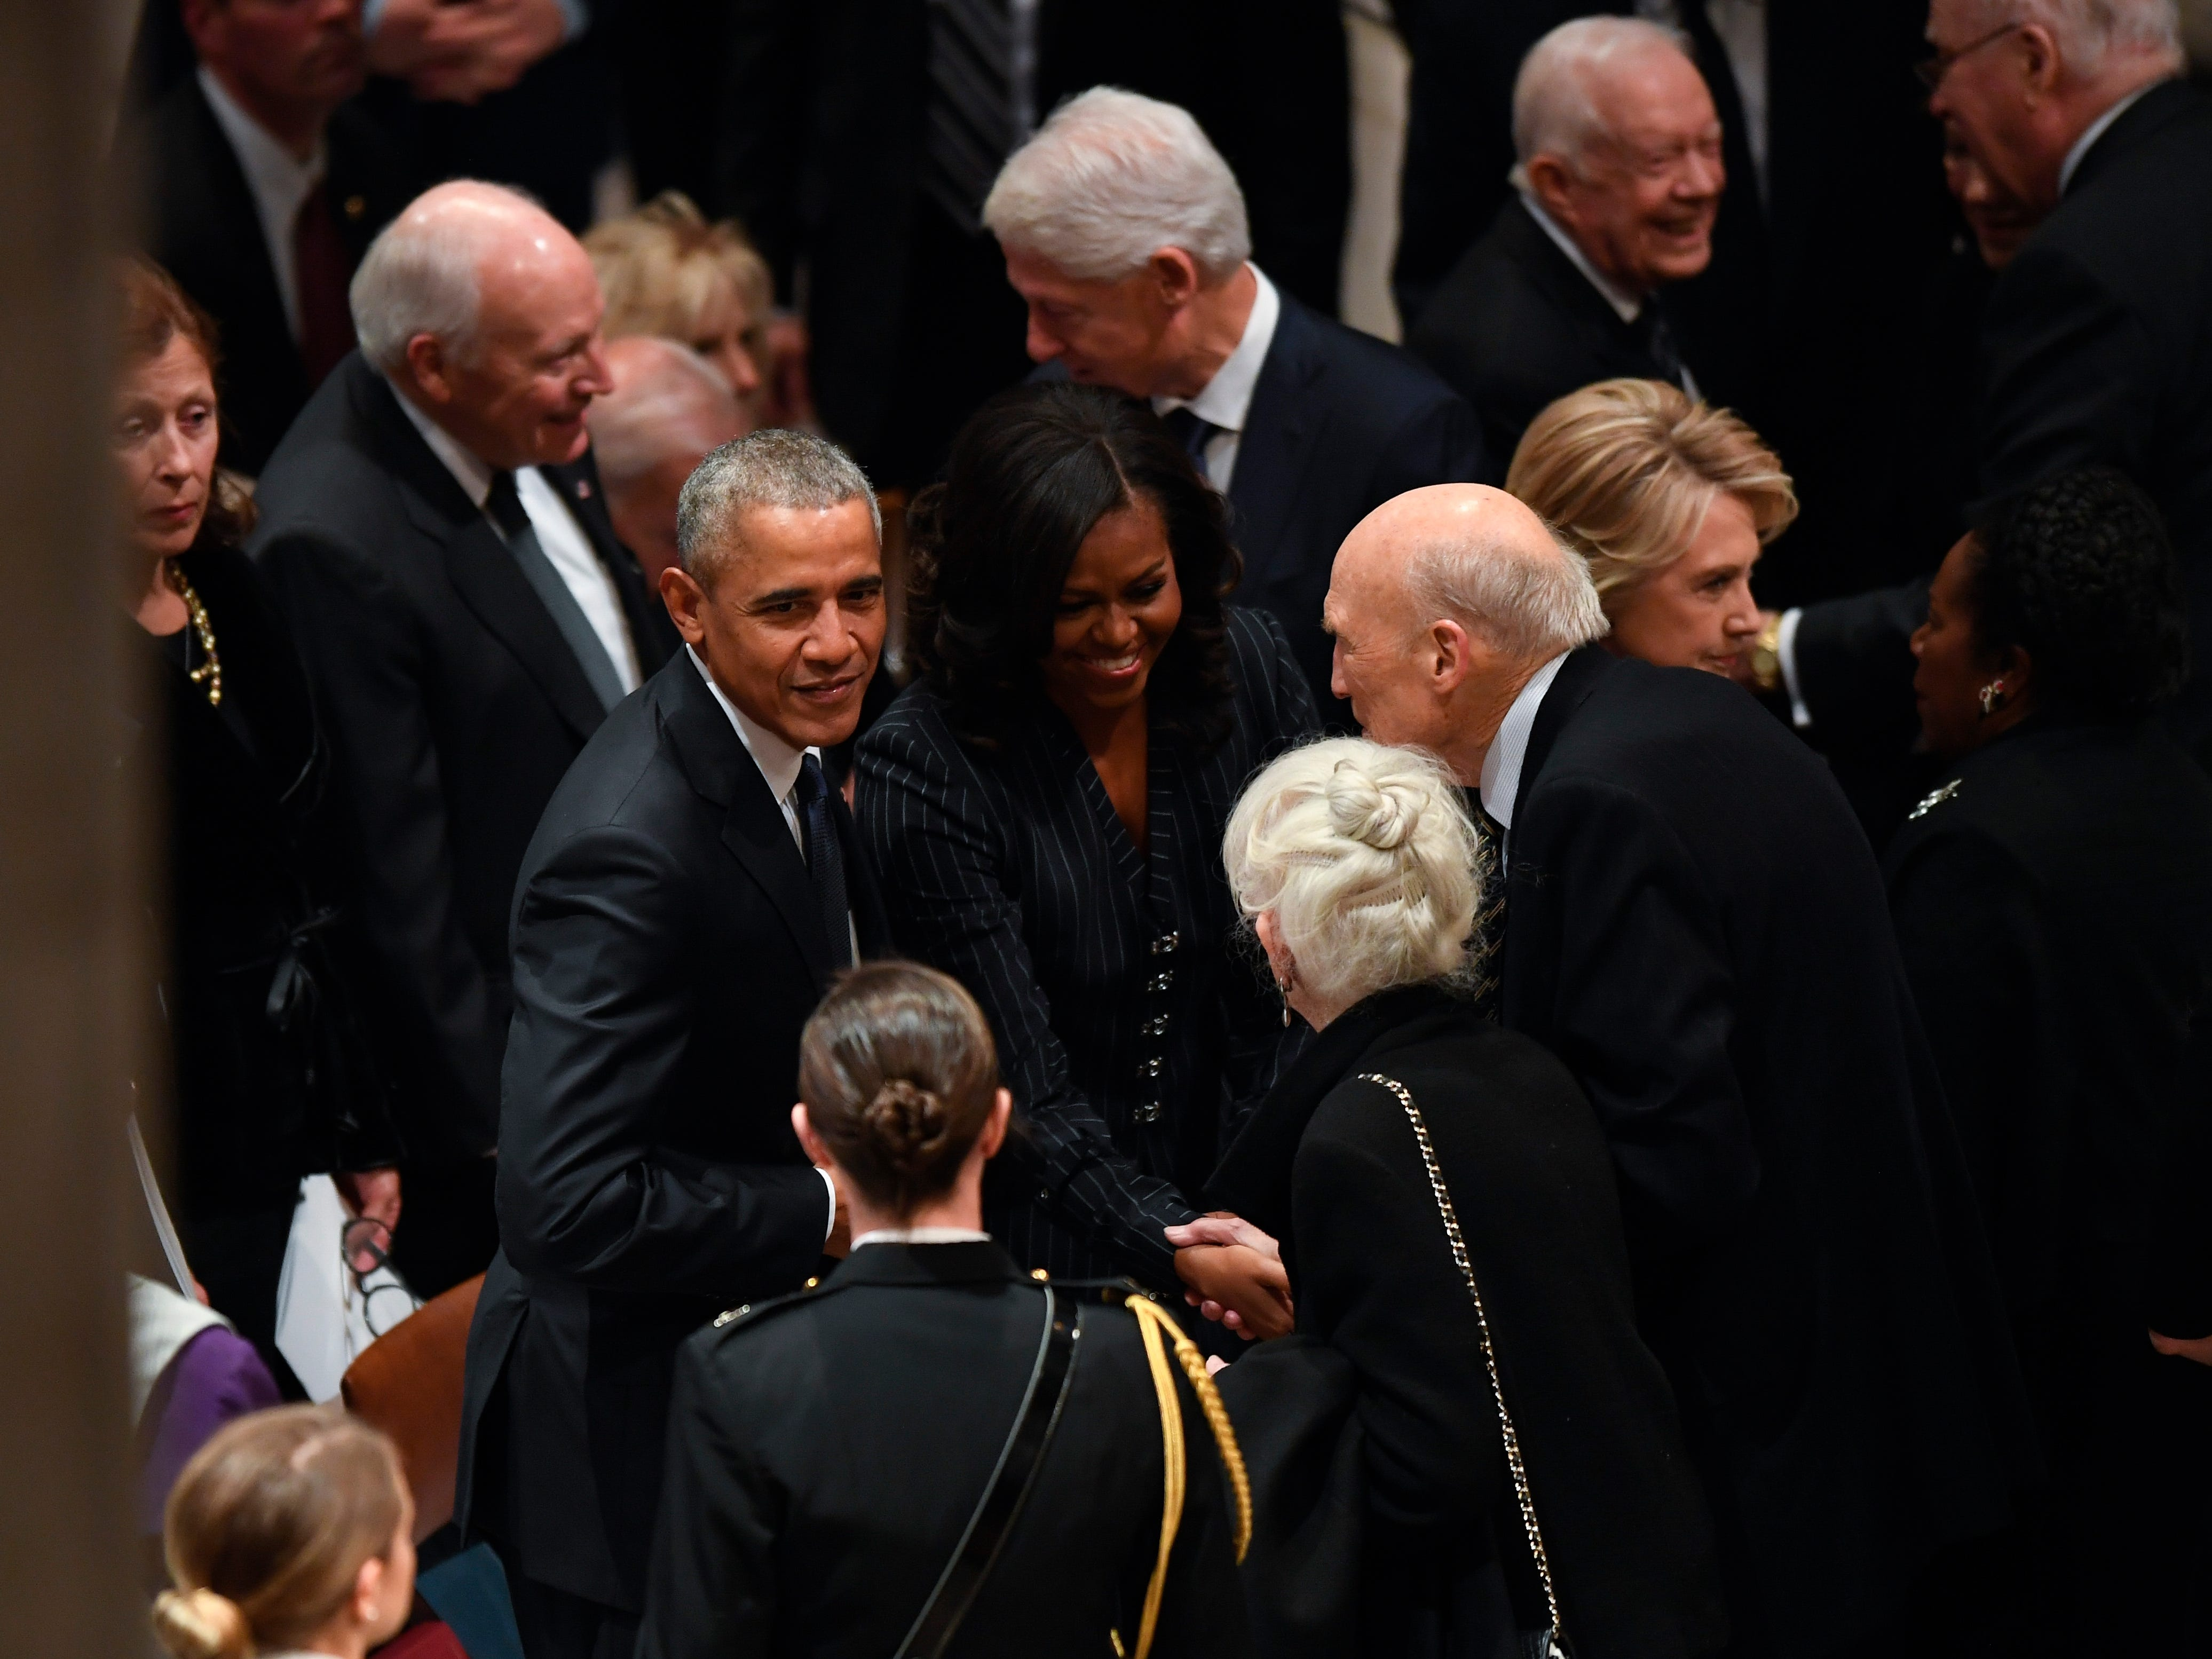 Former President Barack Obama and his wife, Michelle Obama, greet former Sen. Alan Simpson as former President George H.W. Bush before a state funeral at the Washington National Cathedral in Washington, Dec. 5, 2018.